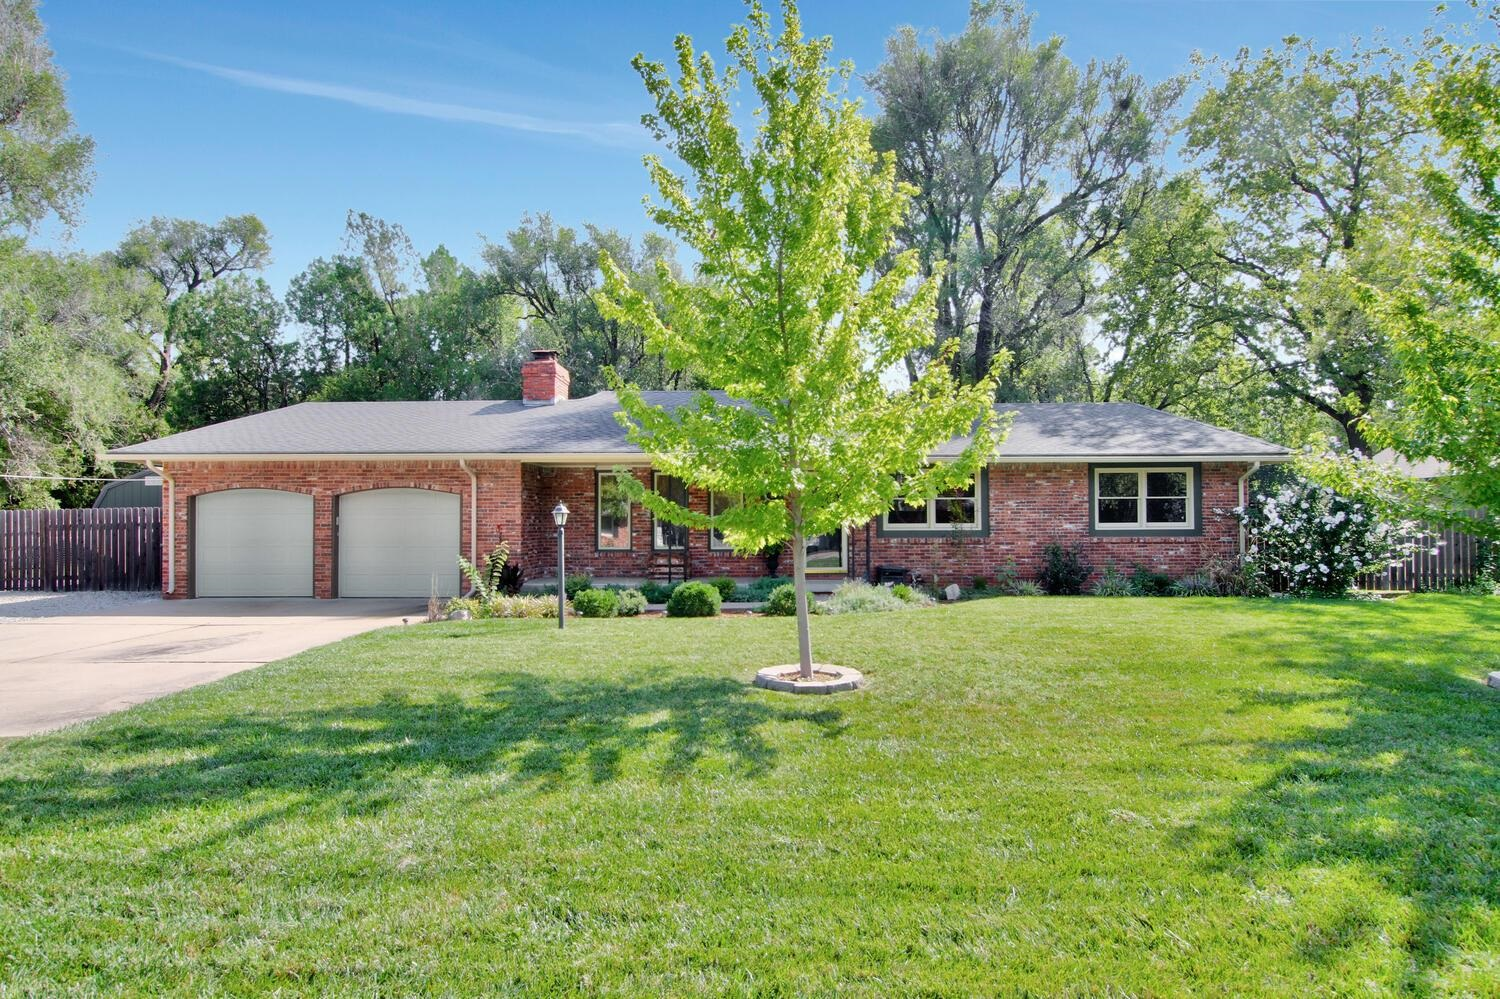 Super nice ranch home on a large lot, lots of updates and home includes all appliances.